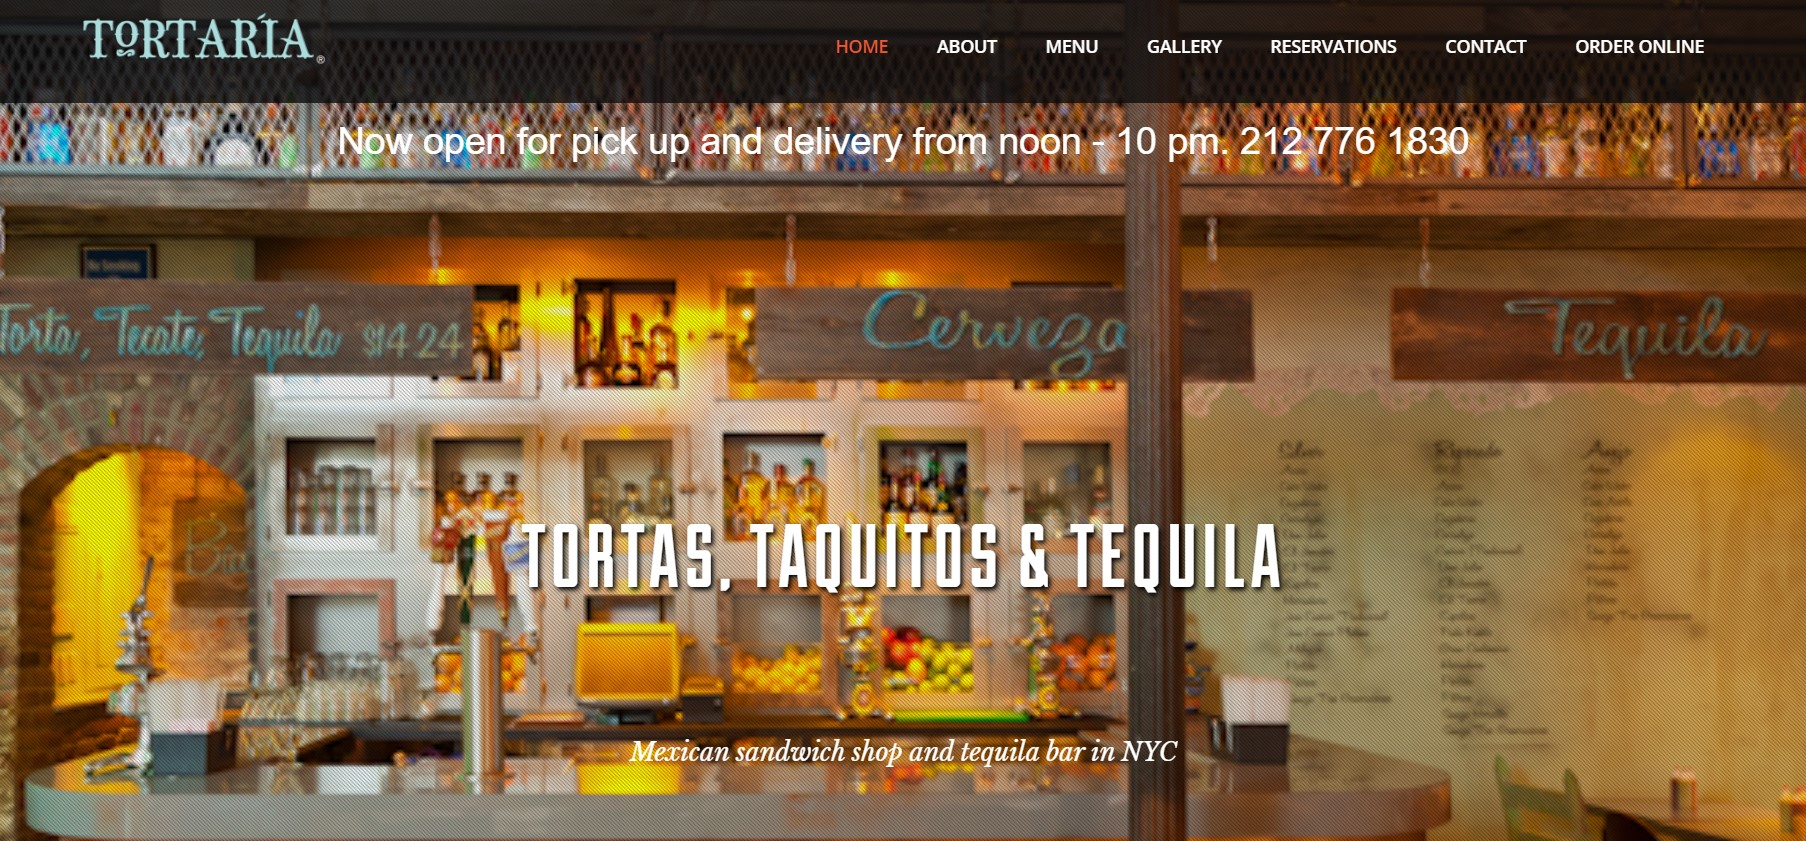 tortaria mexican restaurant in new york